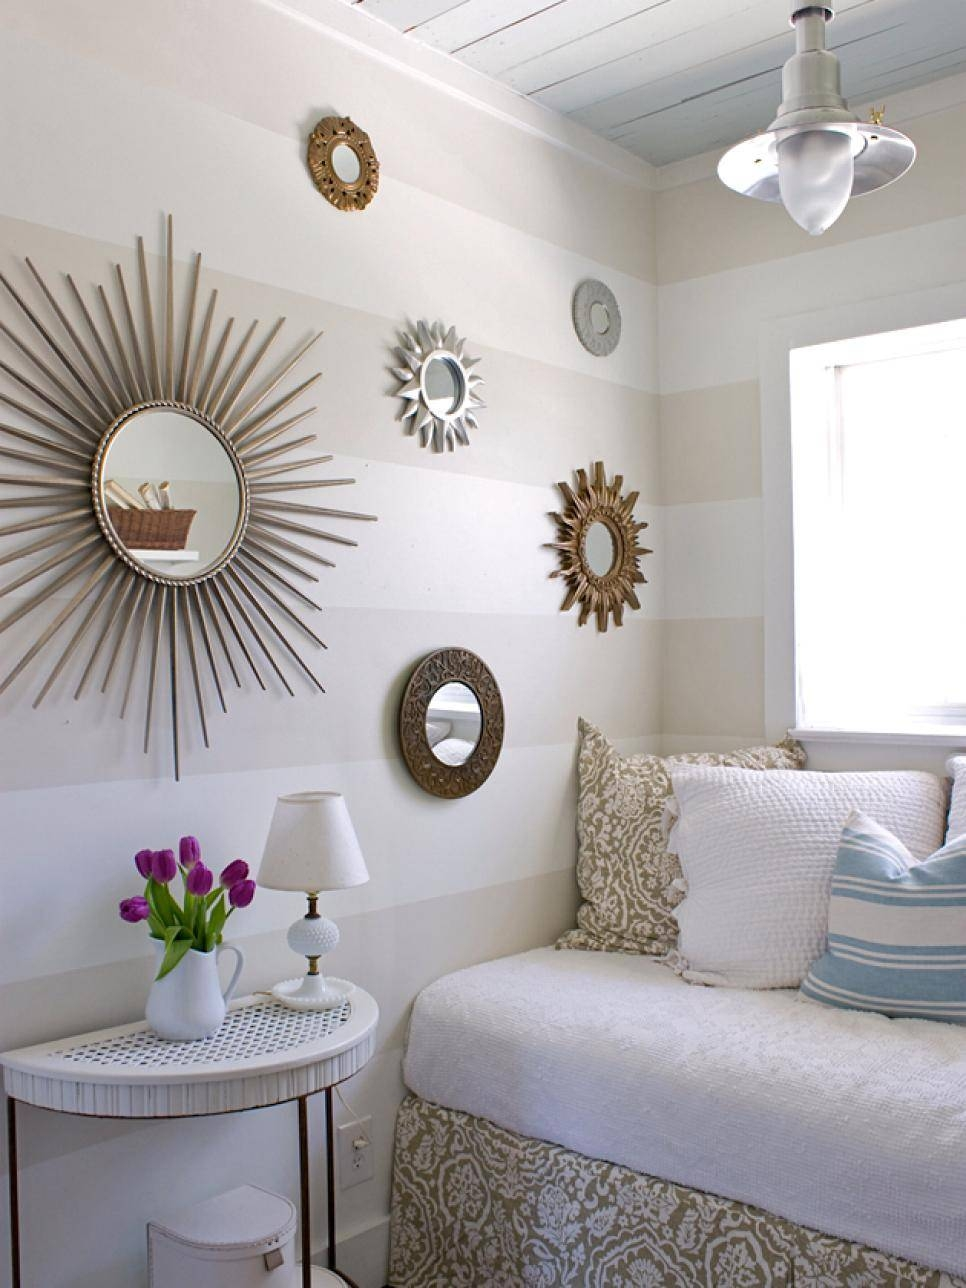 Bedroom Small Decorative Wall Mirrors : Small Decorative Wall within Small Decorative Mirrors (Image 4 of 25)